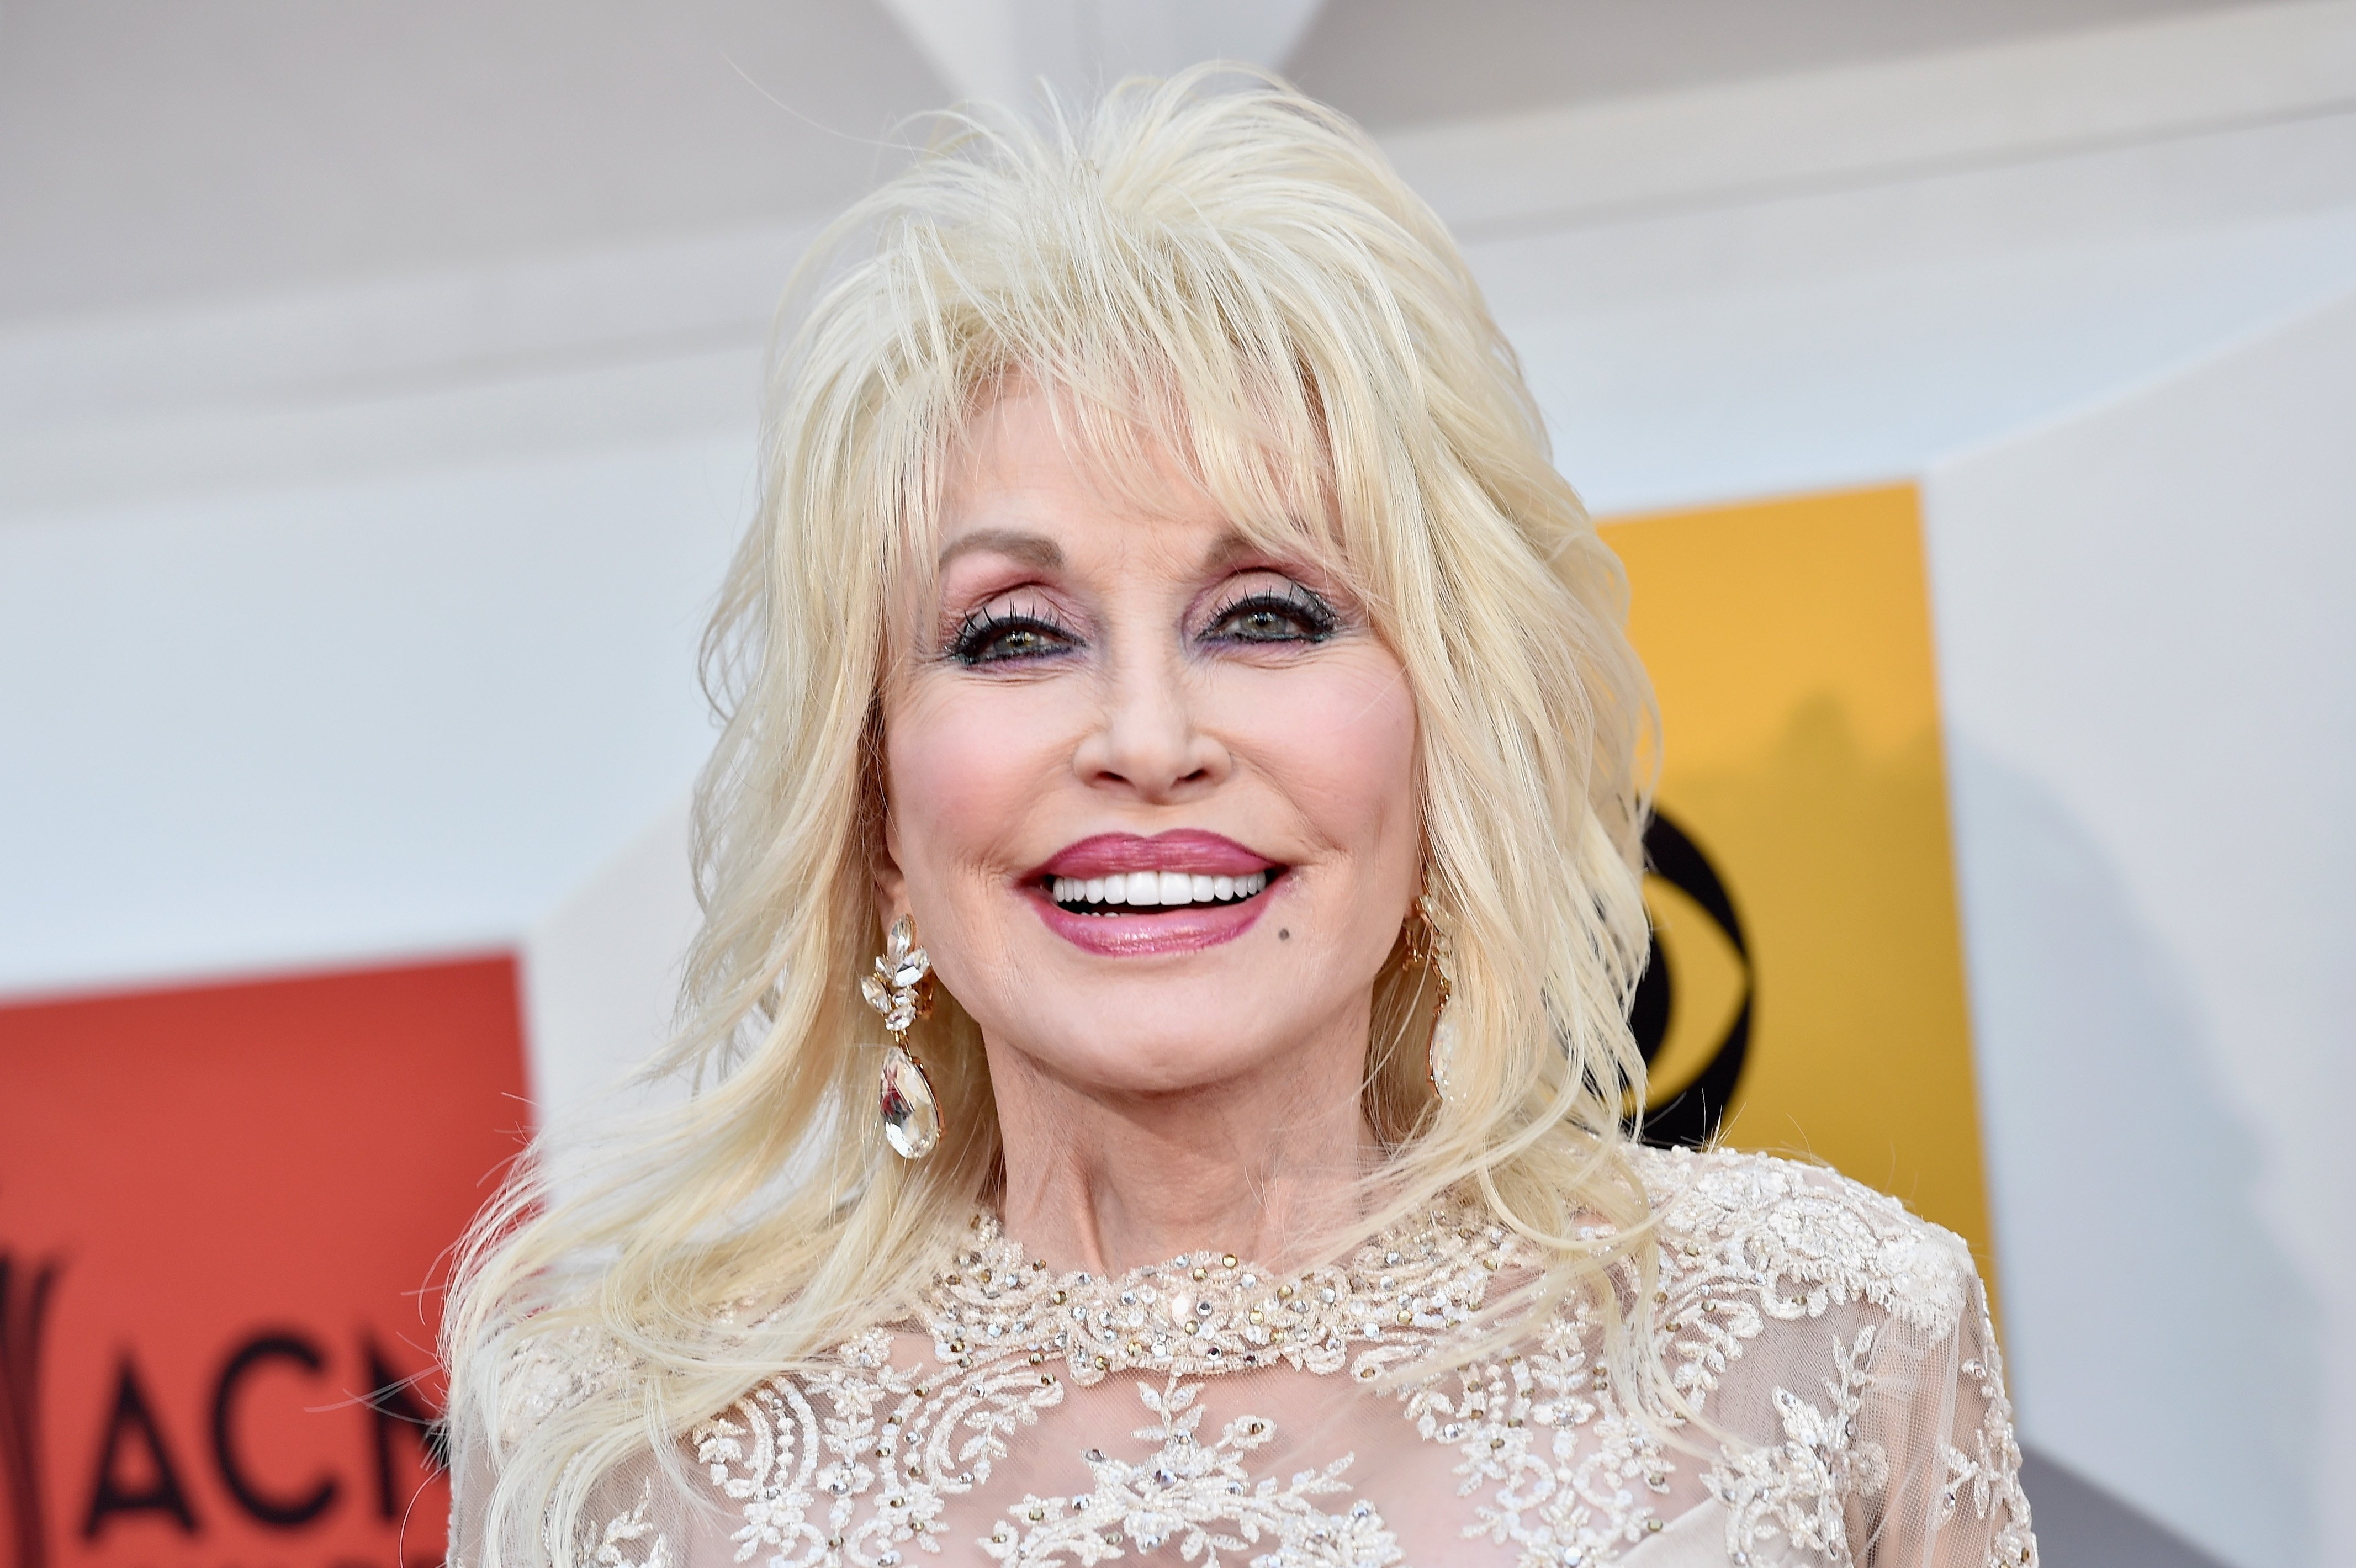 Dolly Parton at the ACM Awards on April 3, 2016 in Las Vegas, Nevada.   Photo: Getty Images